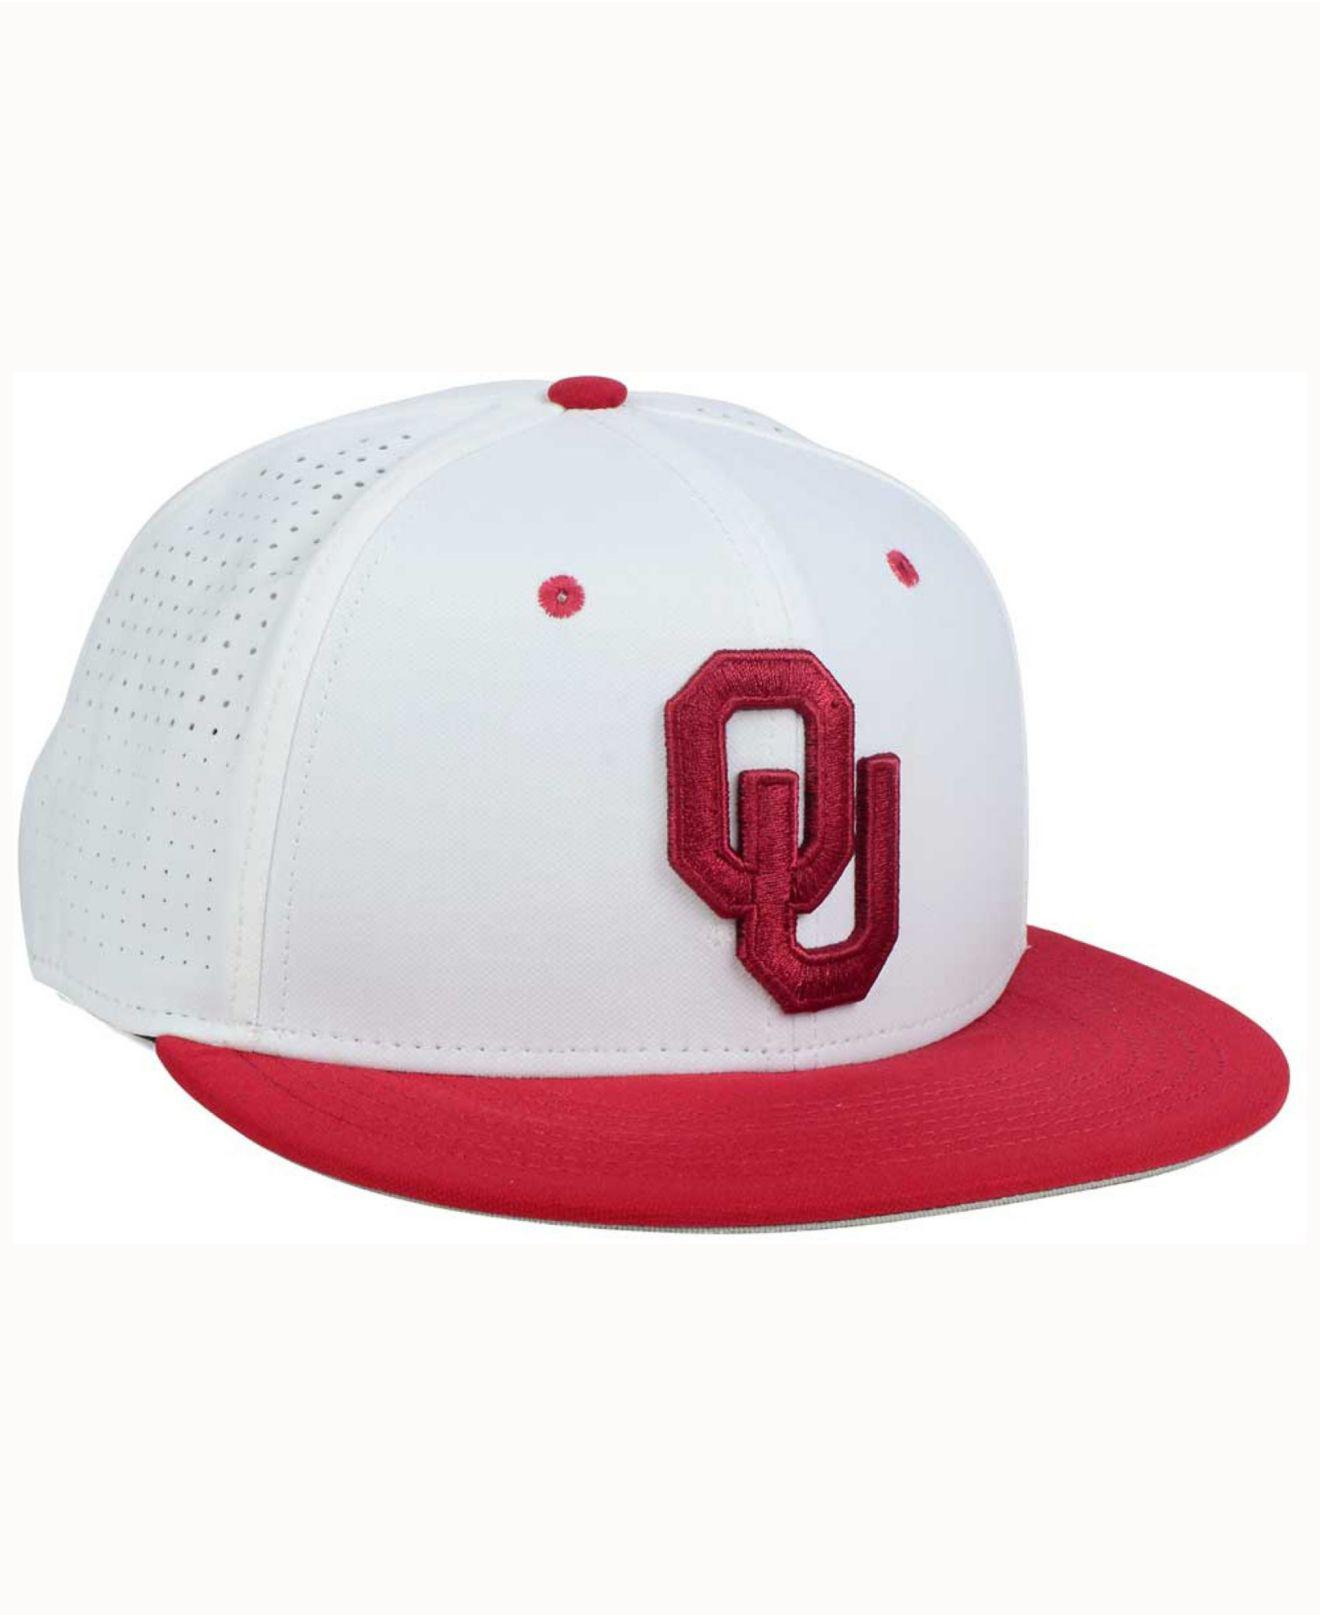 1229bbd1e59 Lyst - Nike Oklahoma Sooners True Vapor Fitted Cap in Red for Men